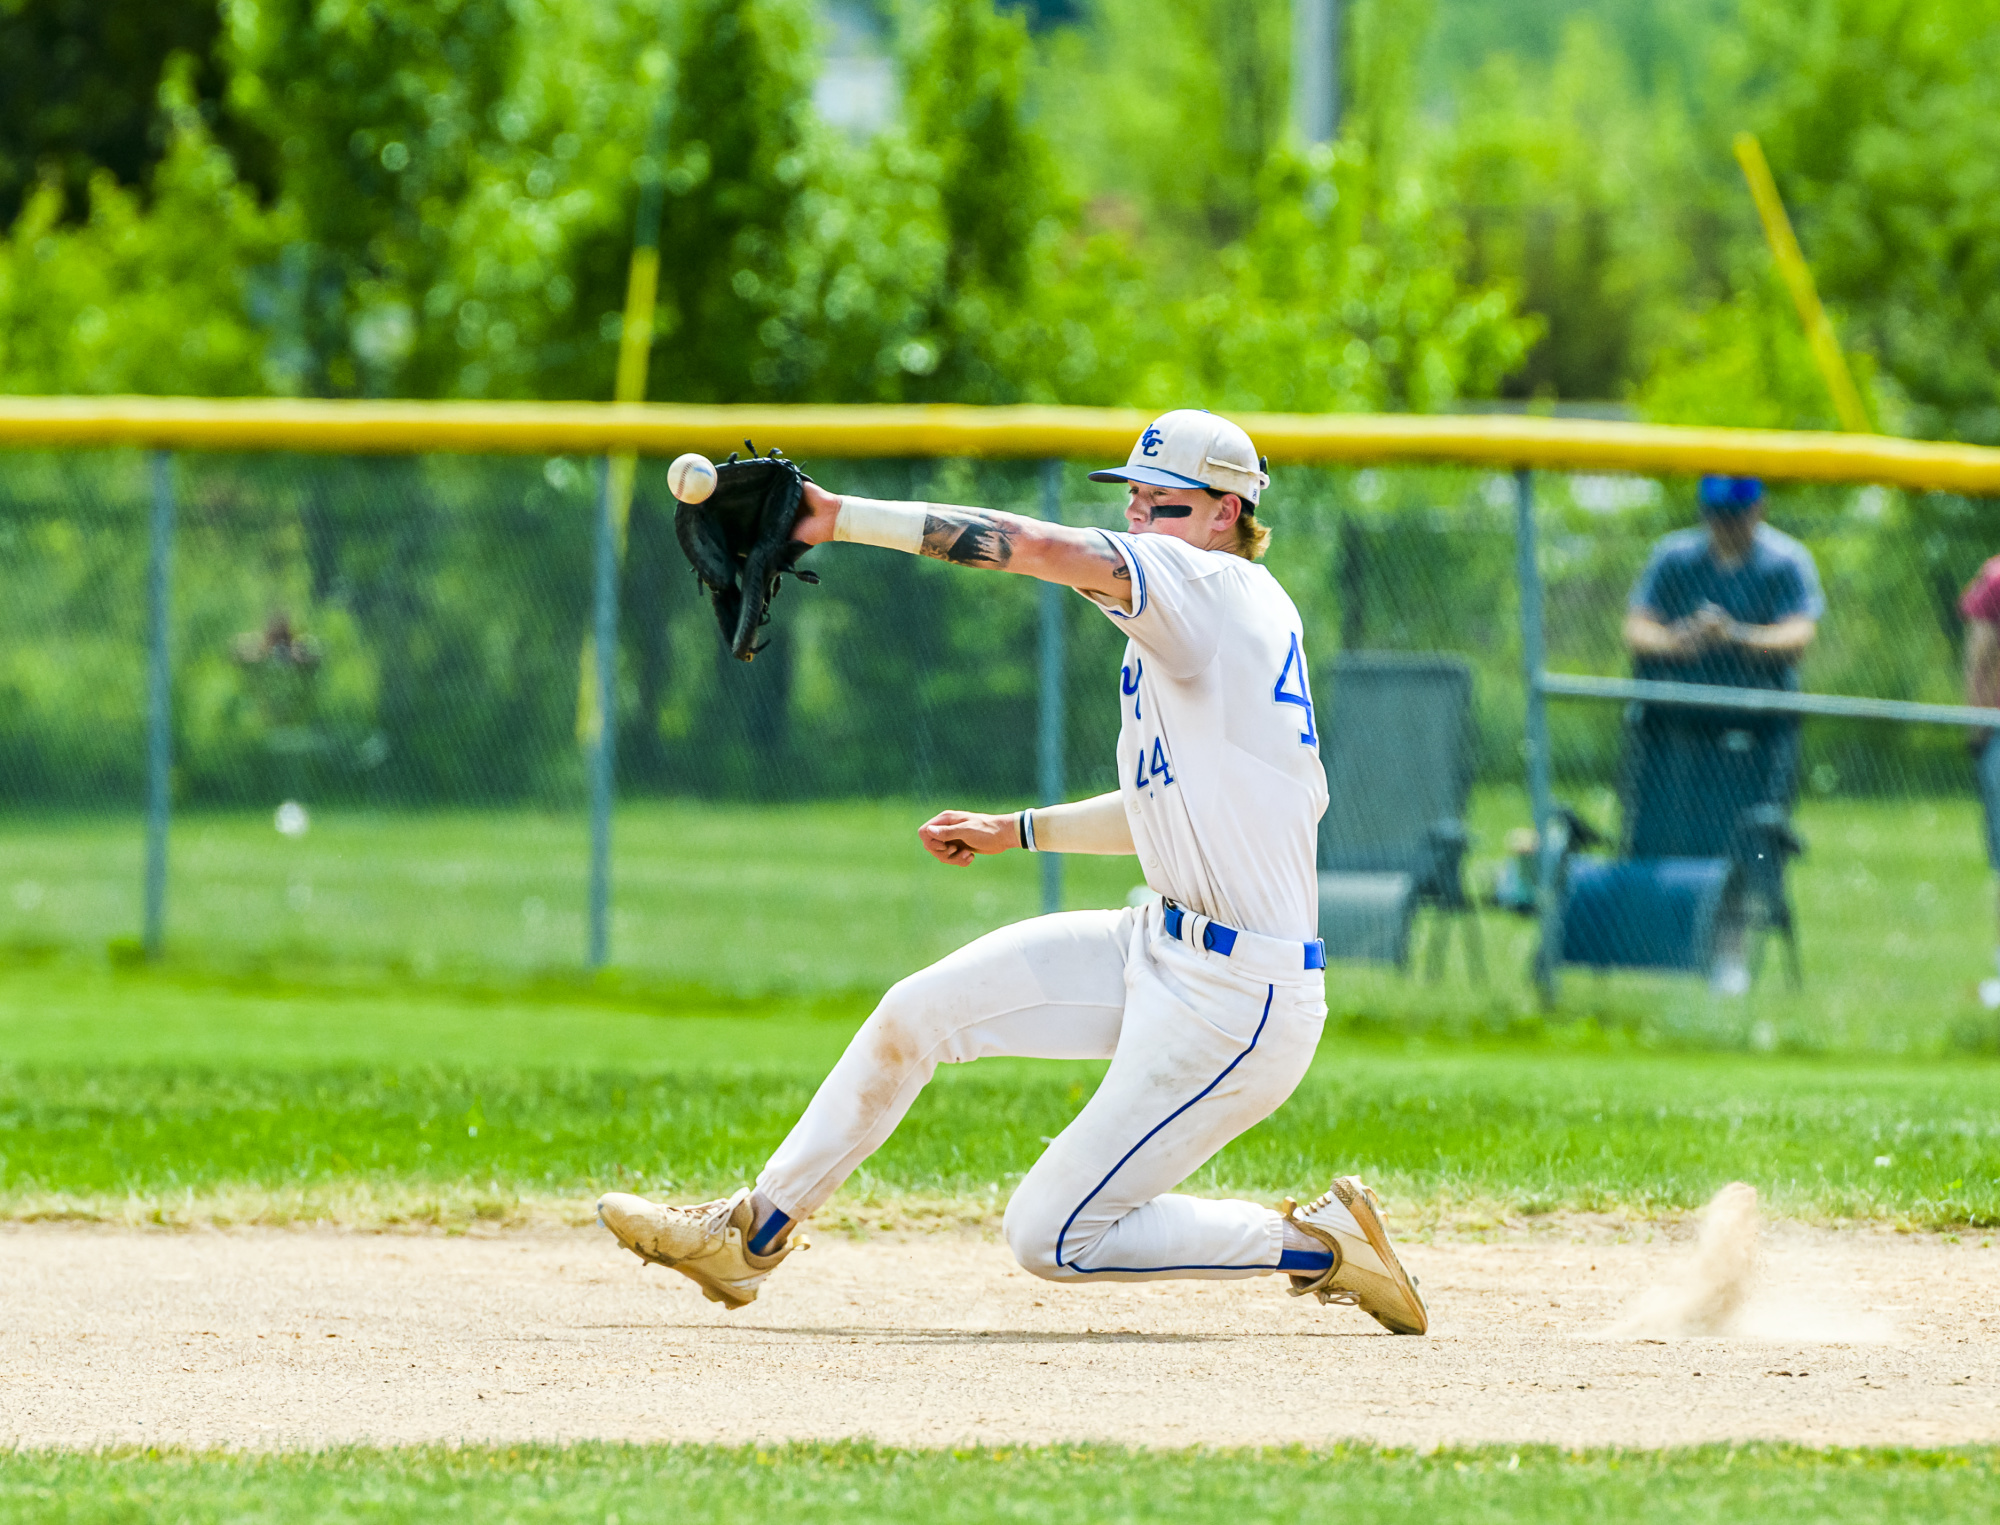 Hunter Lay of LCC moves to catch a throw during the first game of their NJCAA Region XII Baseball Championship series with Kellogg Community College Friday May 21, 2021.